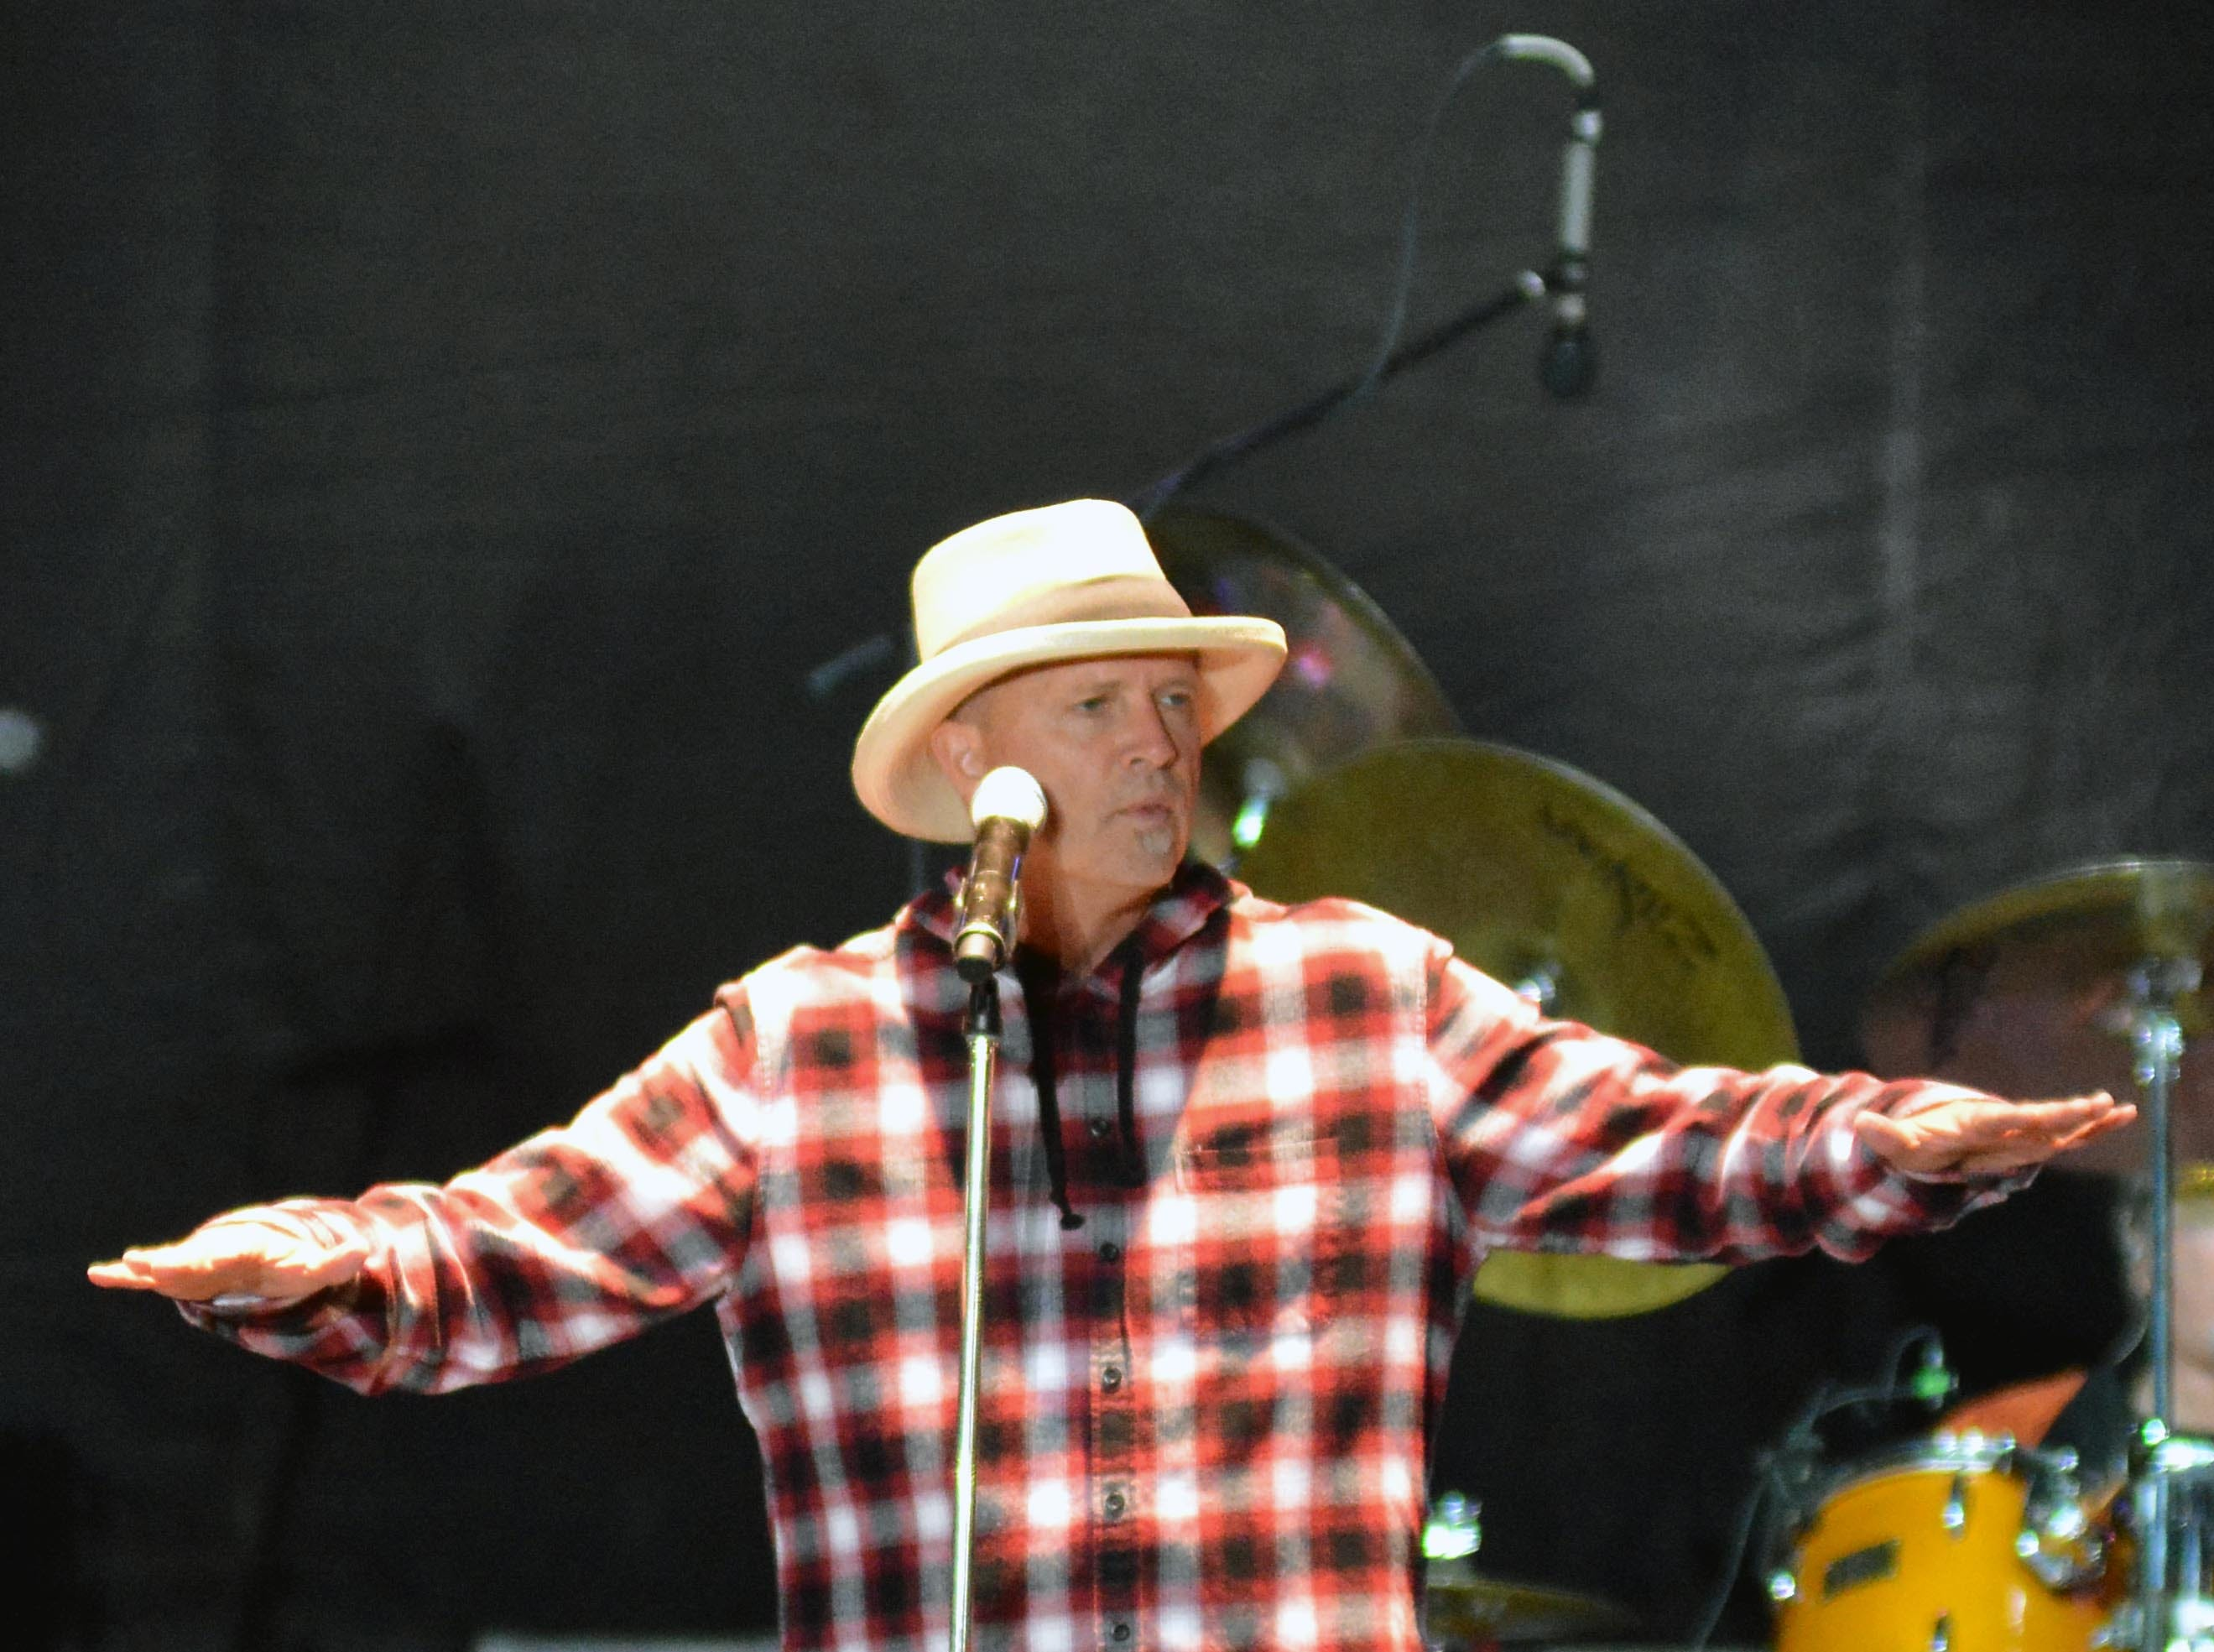 Lead singer Mark Miller, of Sawyer Brown, performs on the Main Stage at the Las Cruces Country Music Festival on Saturday, Oct. 20, 2018.